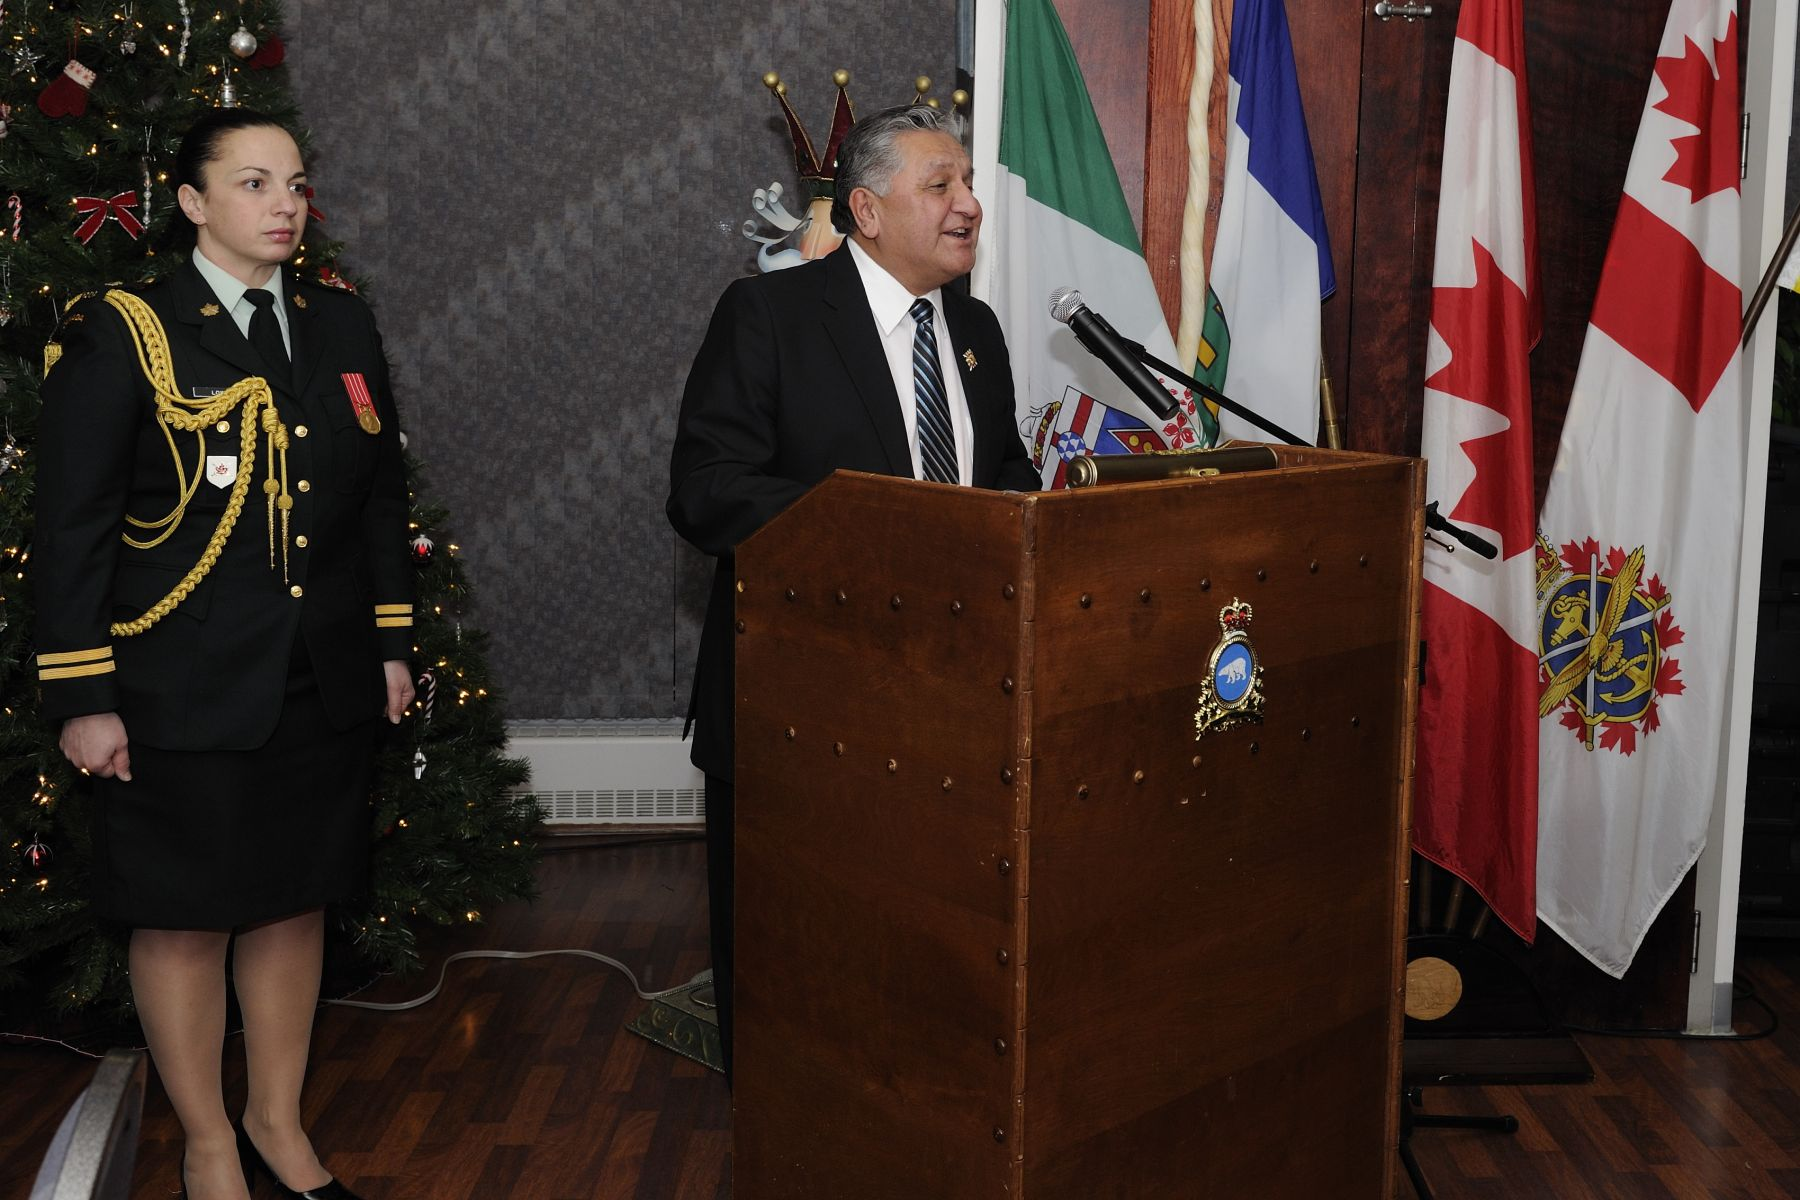 The Honourable George Tuccaro, Commissioner of the Northwest Territories, hosted a dinner in honour of Their Excellencies' visit to the Territory.